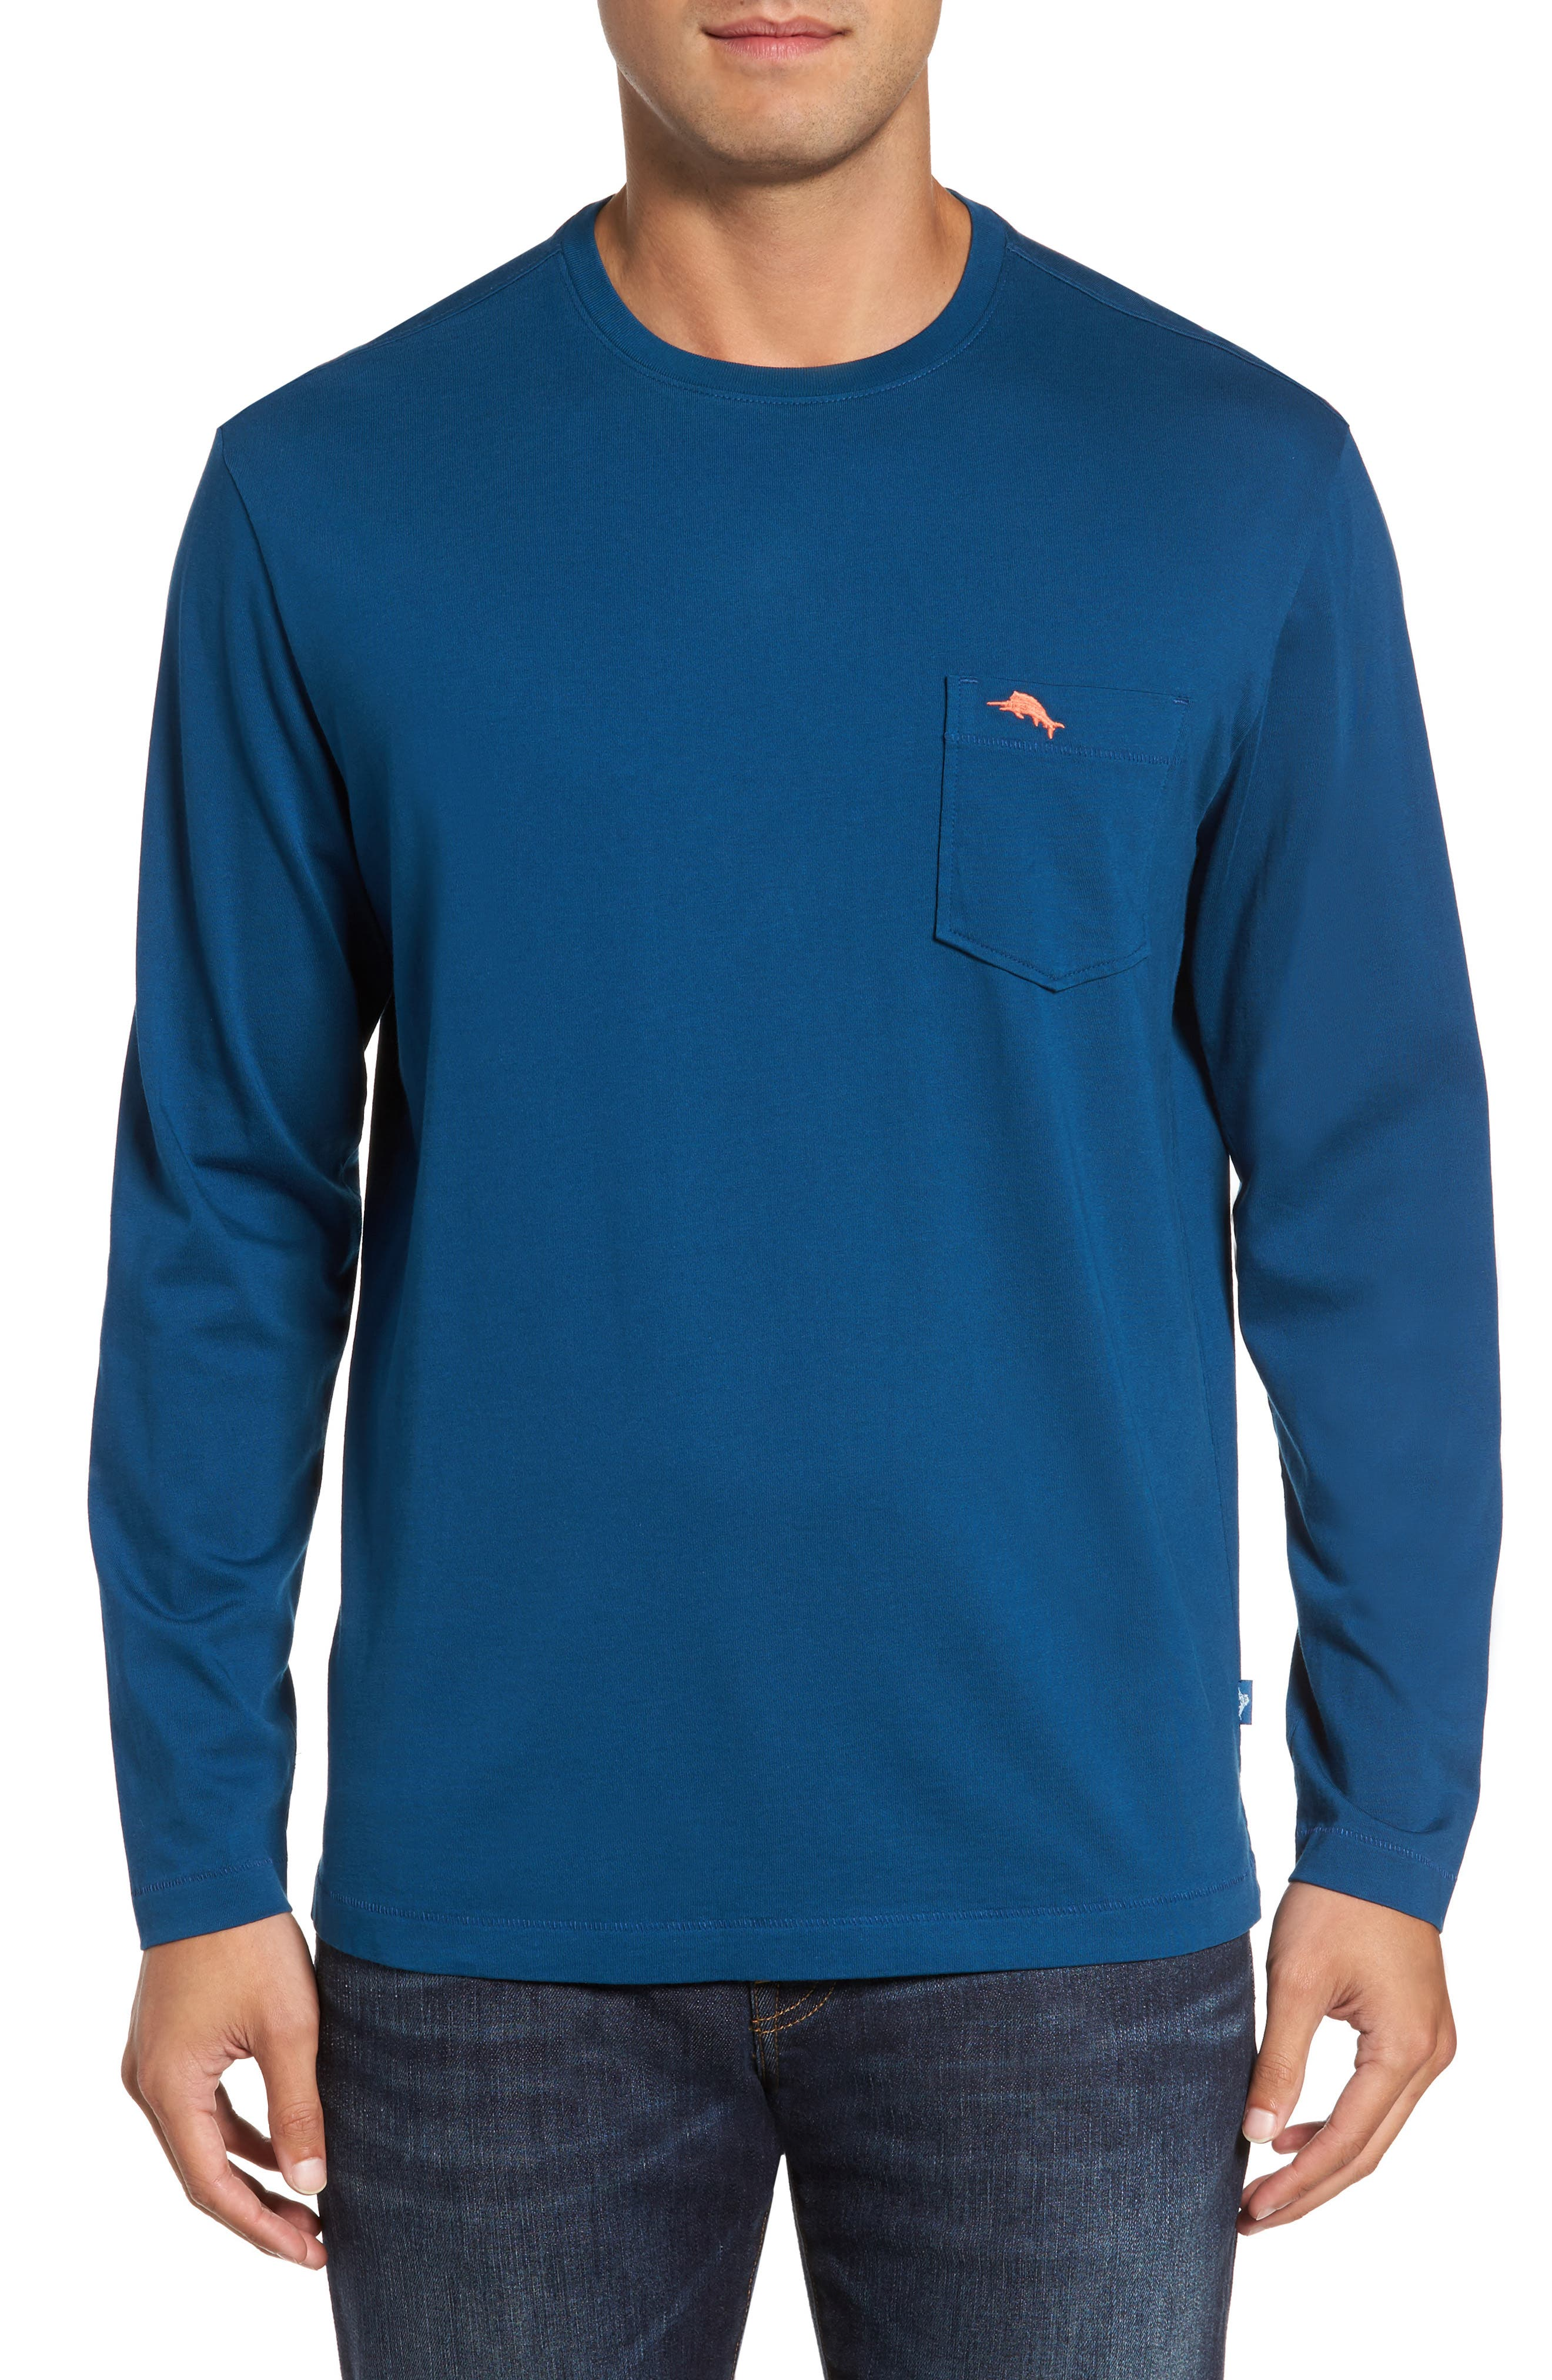 Tommy Bahama 'Bali Skyline' Long Sleeve Pima Cotton T-Shirt (Big & Tall)